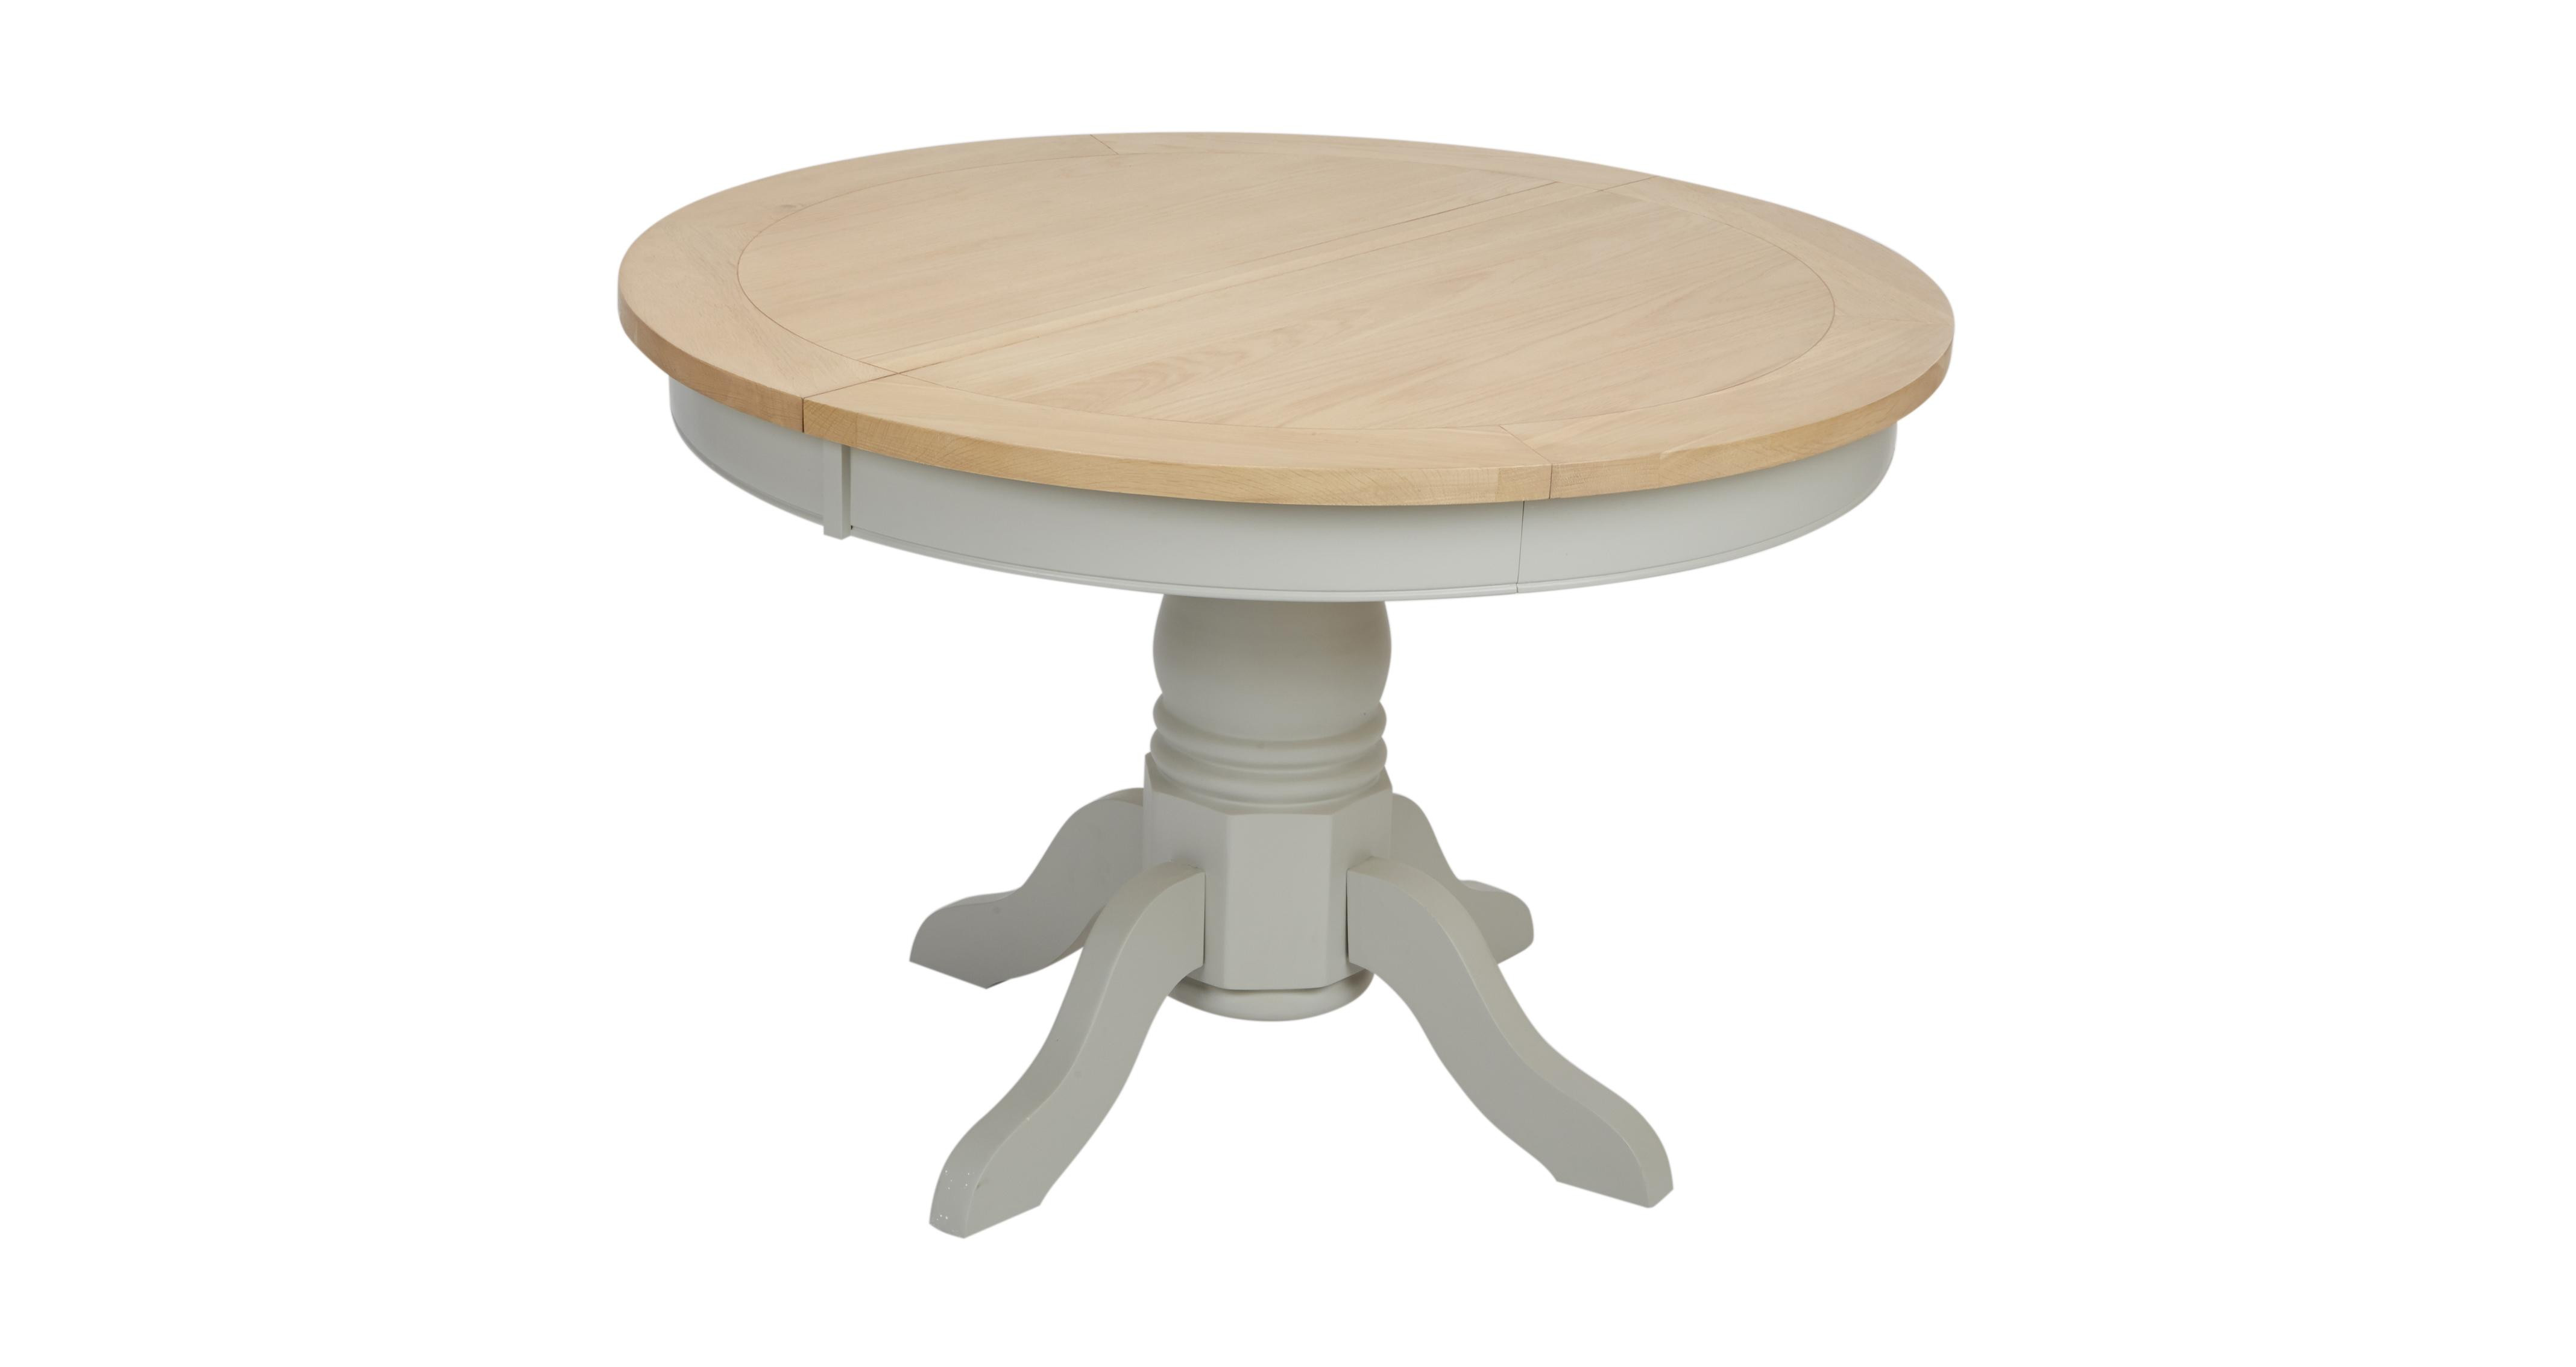 Best ideas about Round Extendable Dining Table . Save or Pin Harbour Round Extending Dining Table Now.